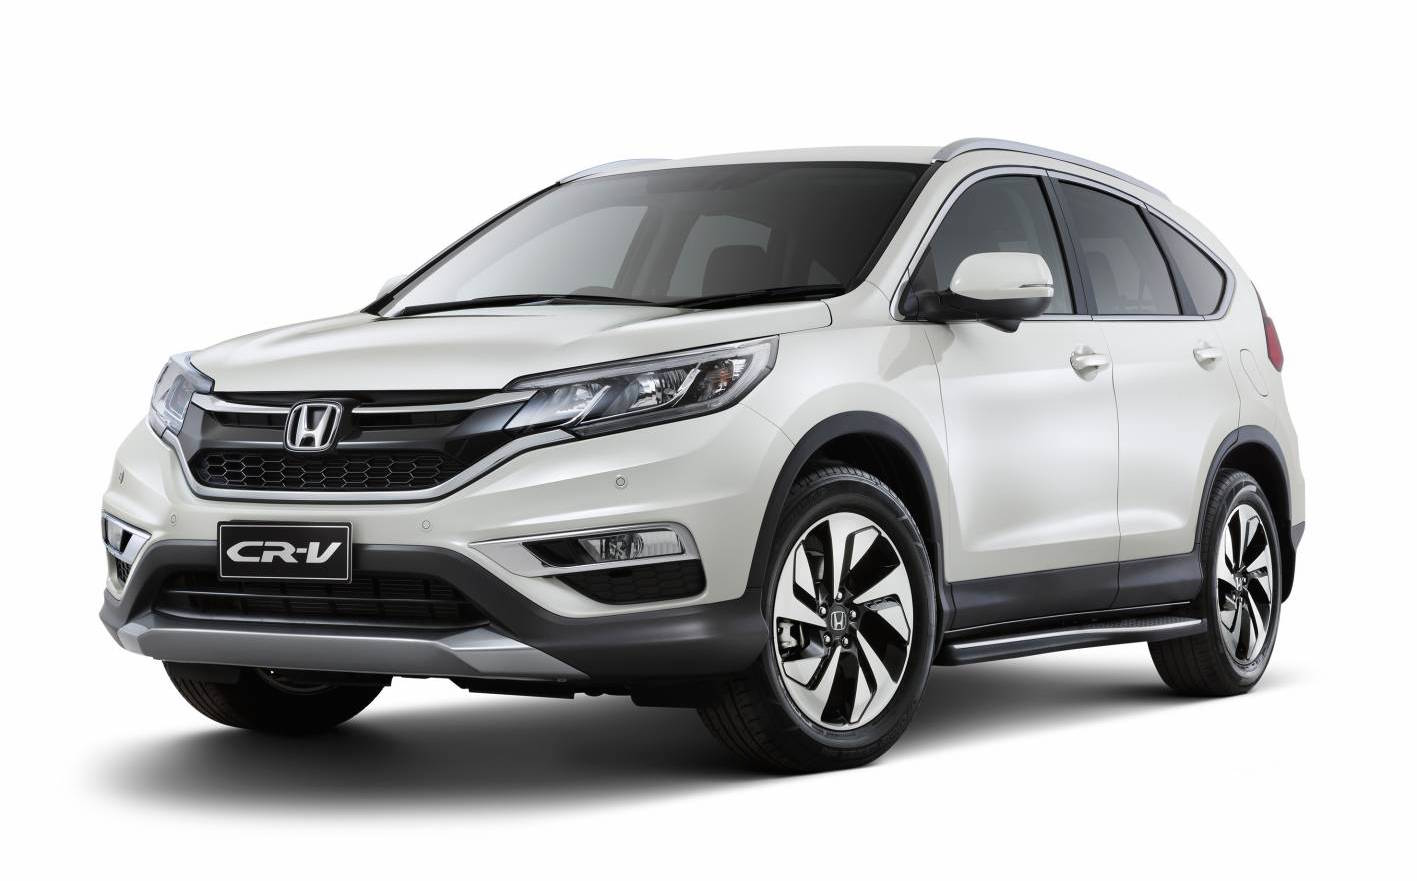 2015 Honda CR-V 4WD Limited Edition on sale from $35,690 ...